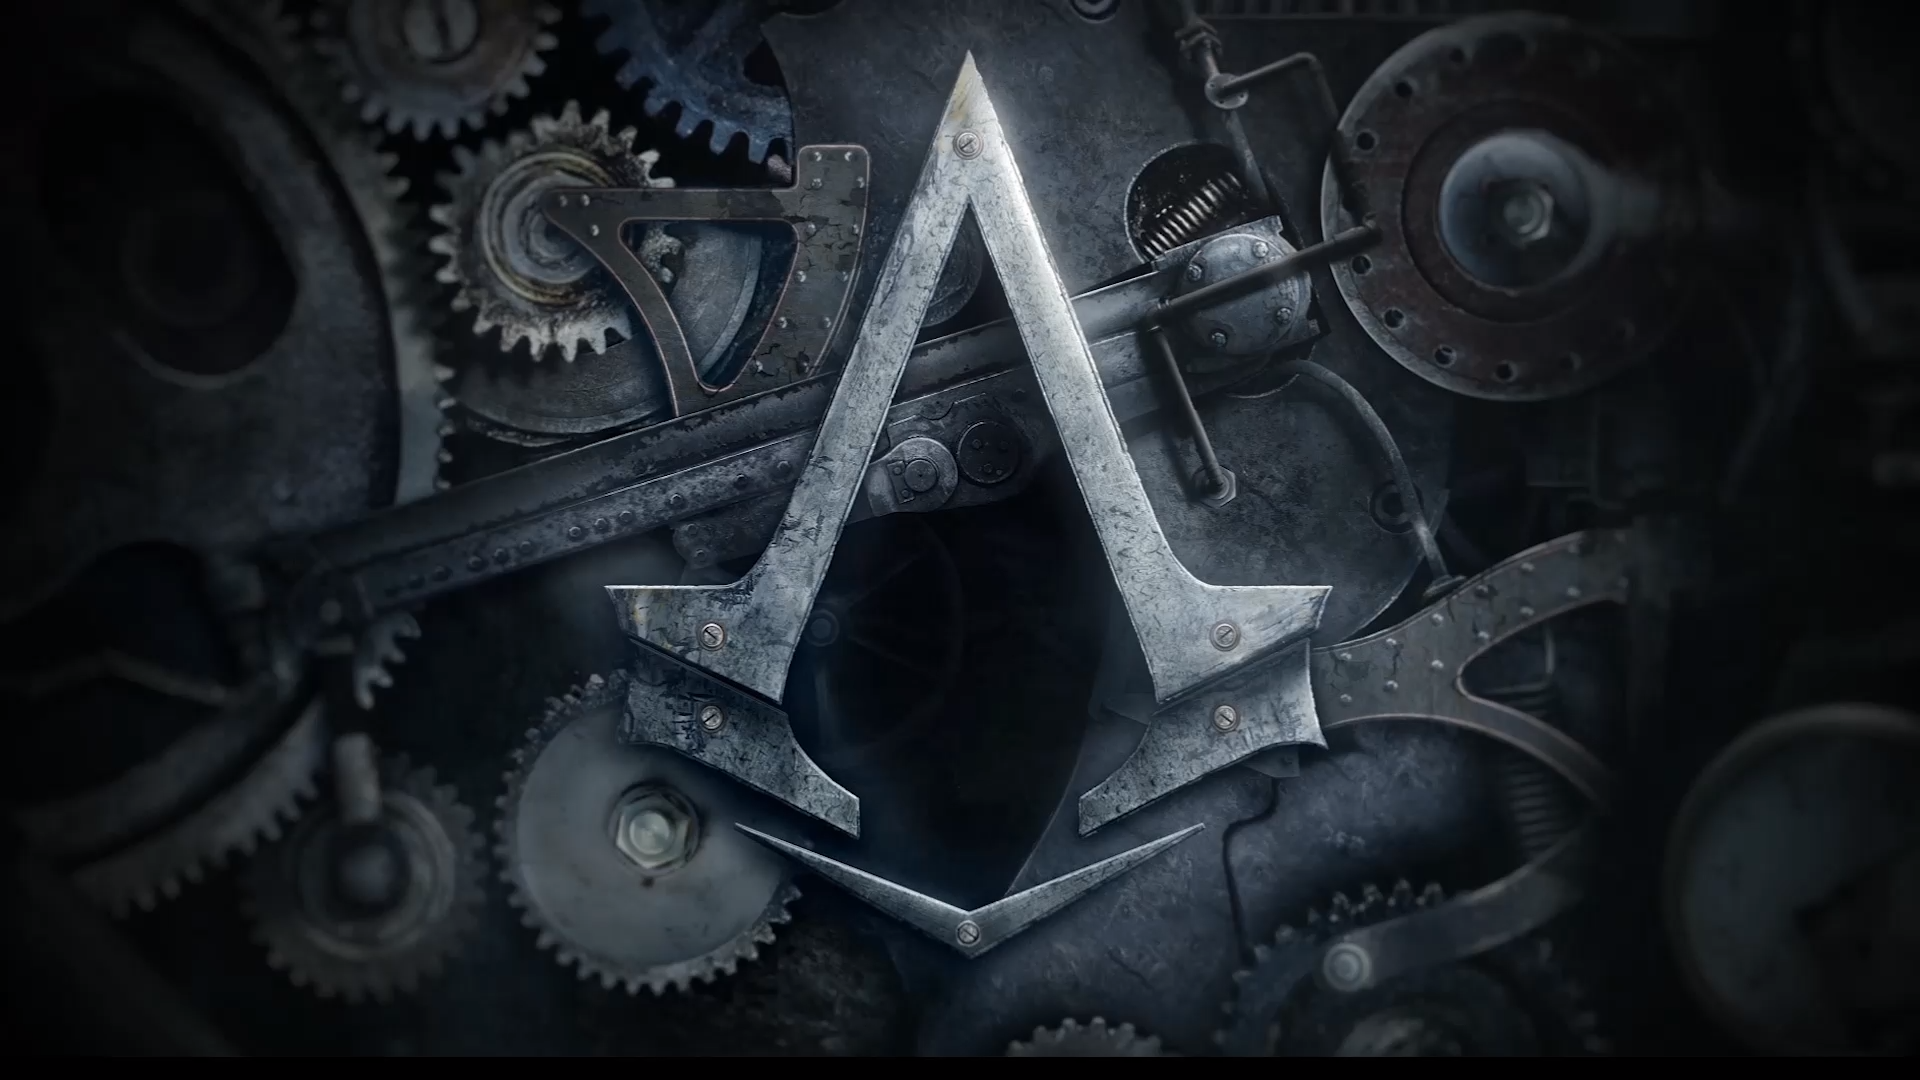 Assassin's Creed Syndicate LOGO Gaming Wallpaper